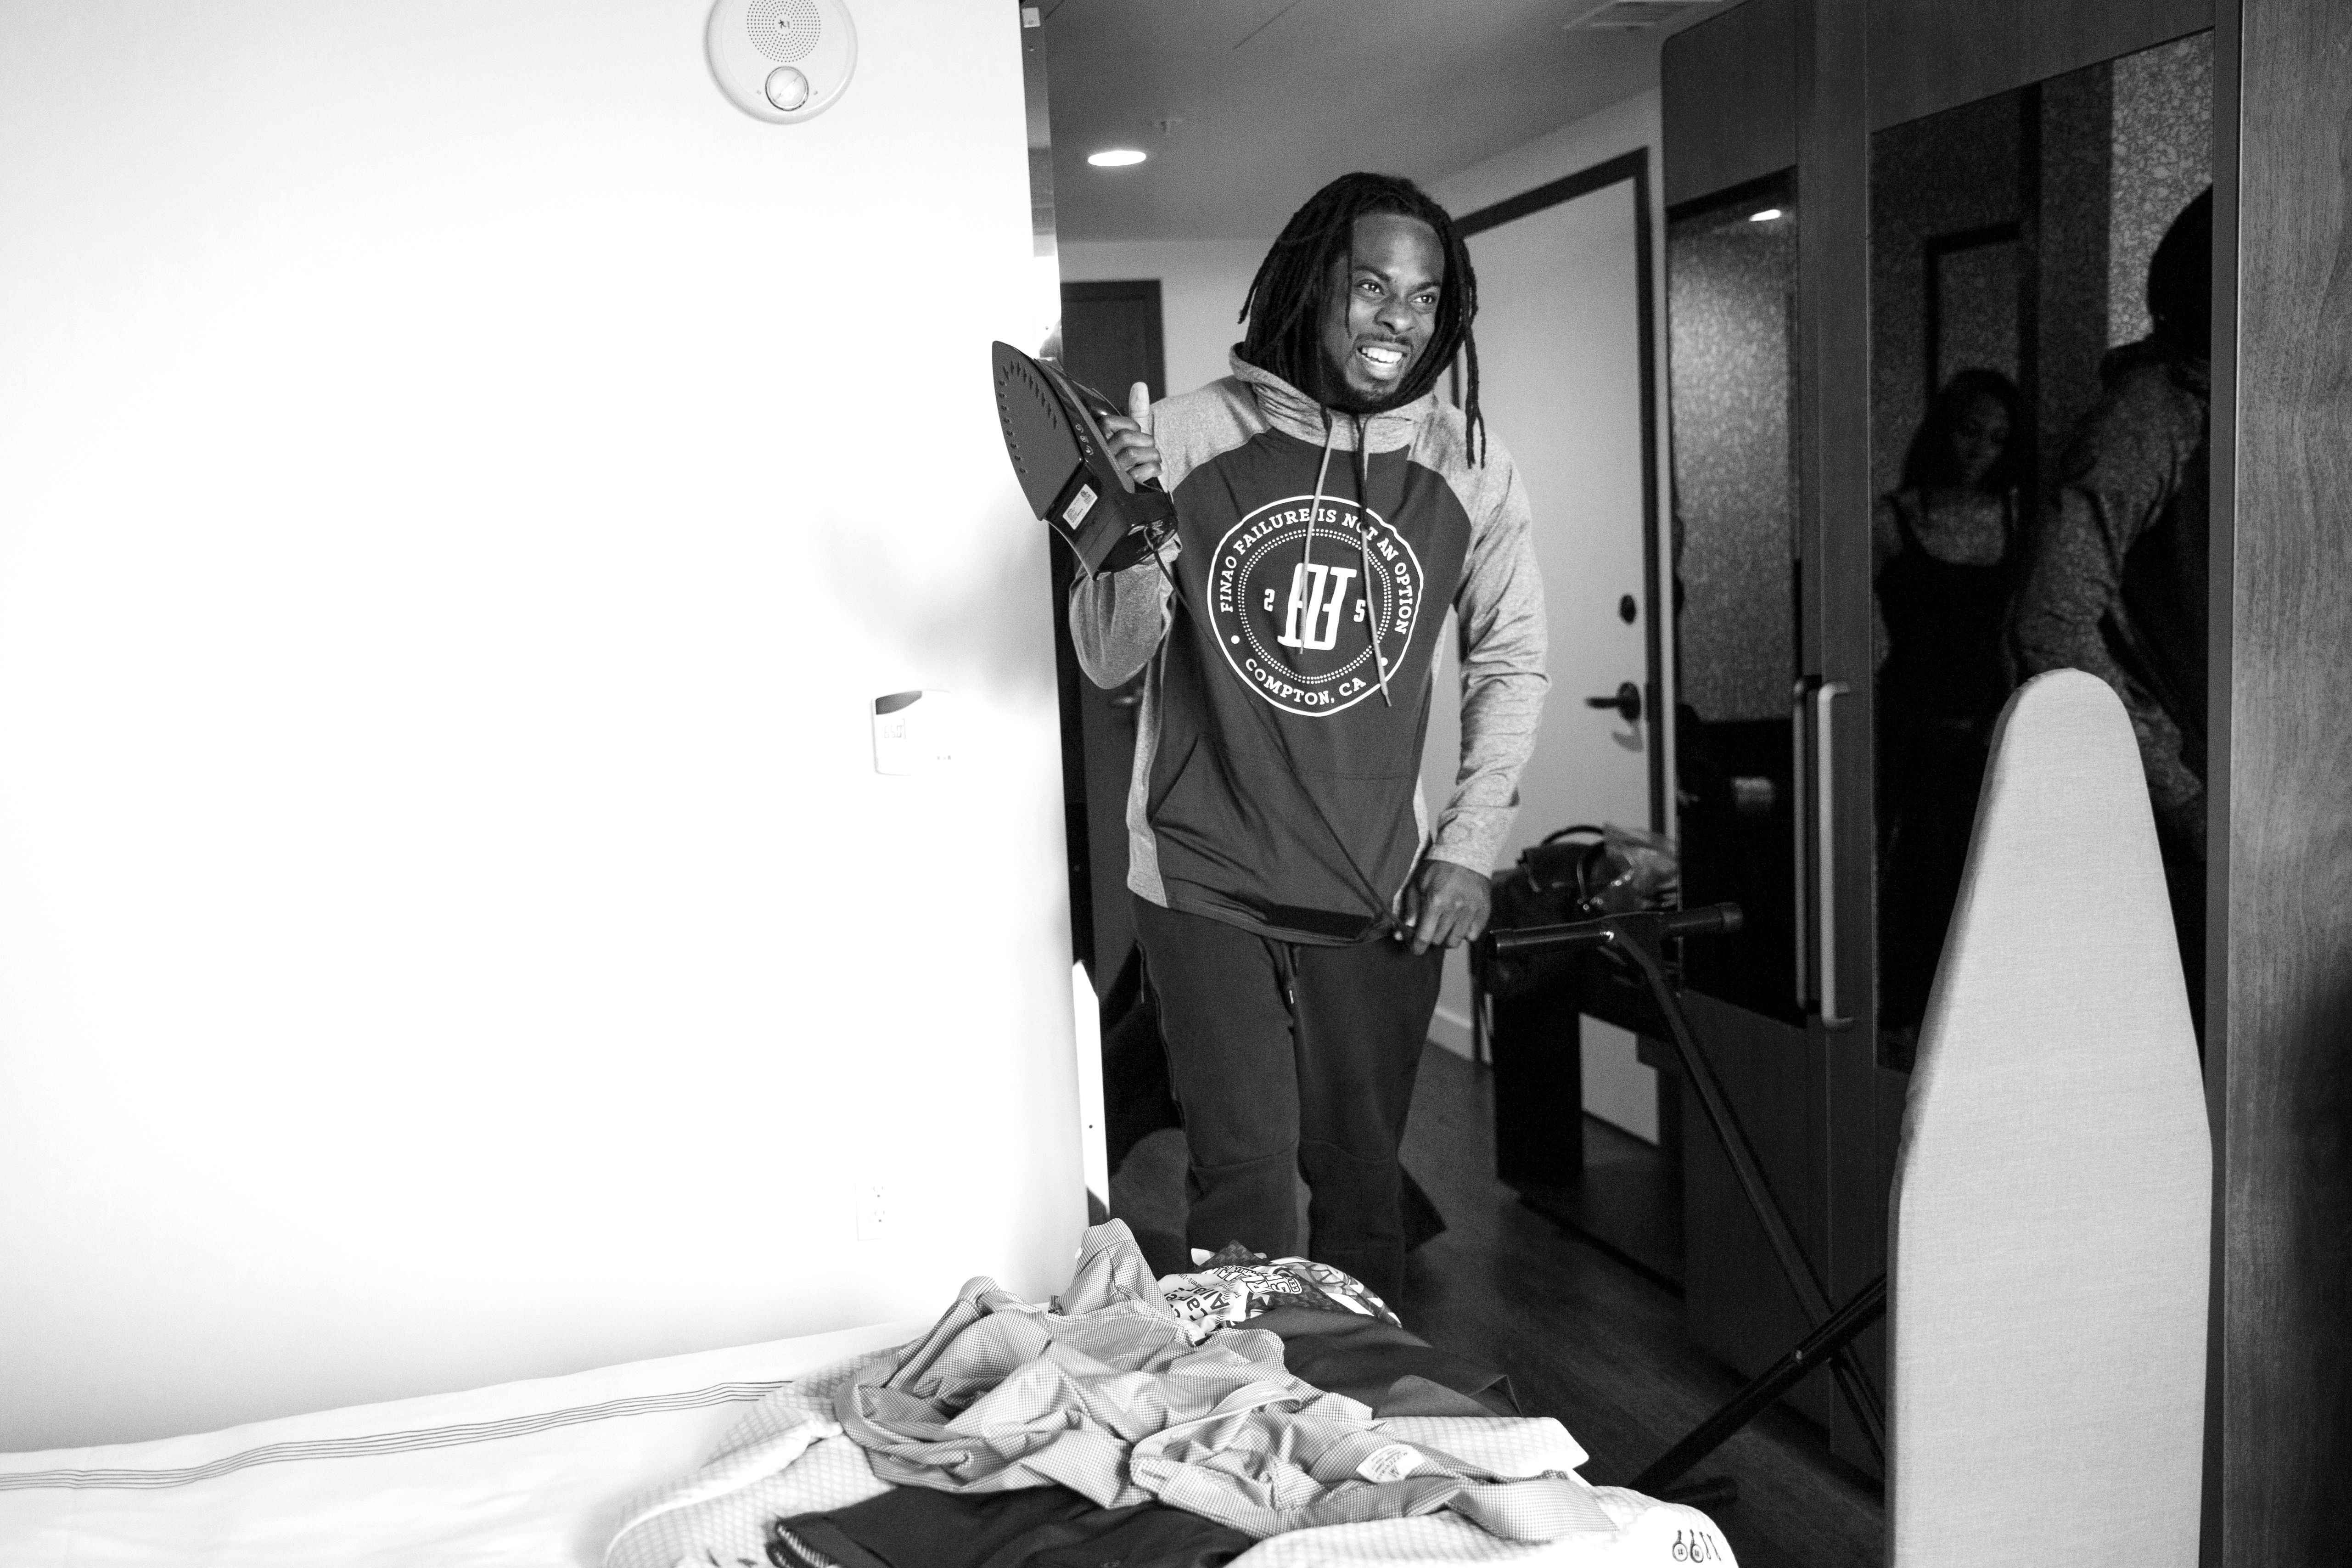 Richard Sherman gets ready in his hotel room before the Richard Sherman Celebrity Softball Gala on July 9, 2016 in Seattle, WA. (Photo by Taylor Baucom/The Players' Tribune)